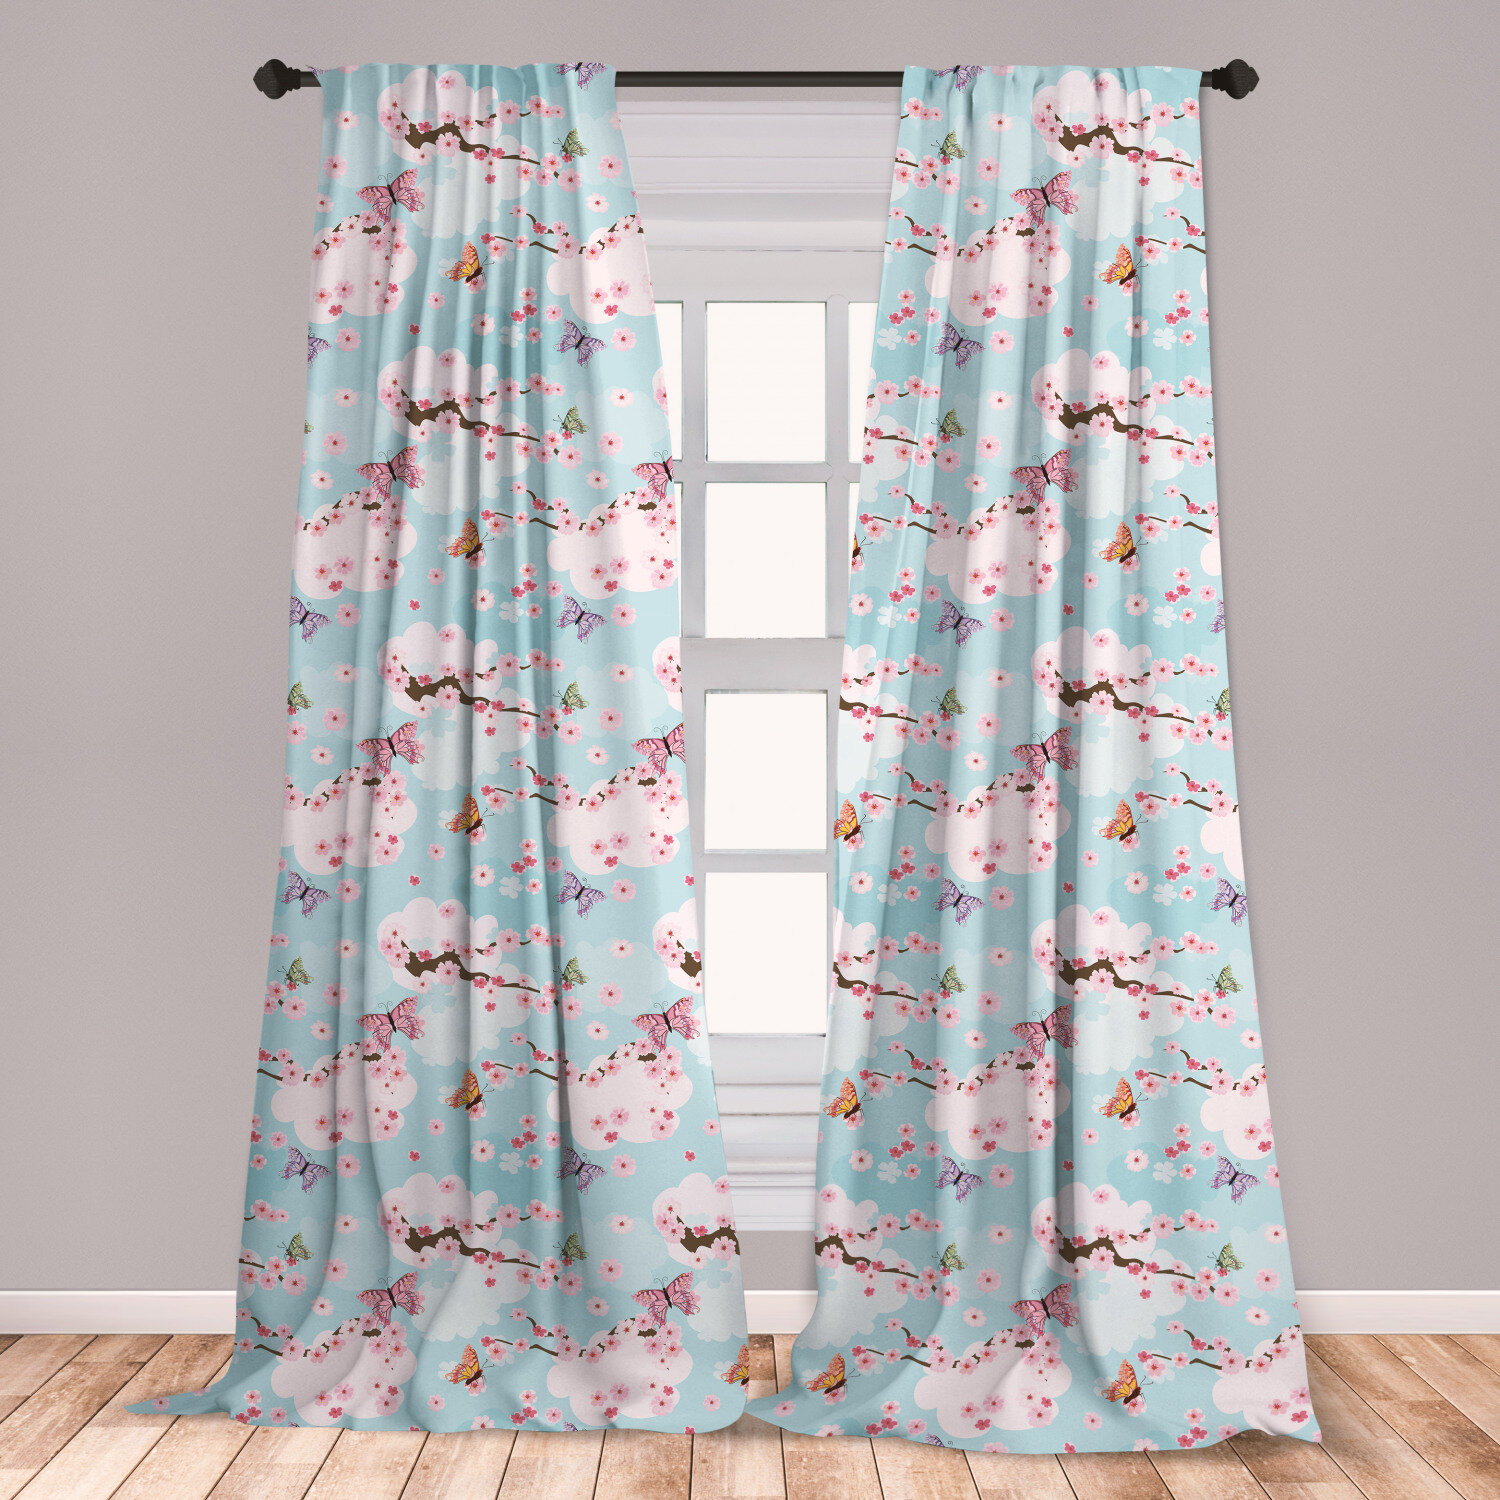 East Urban Home Cherry Blossom Floral Room Darkening Rod Pocket Curtain Panels Wayfair